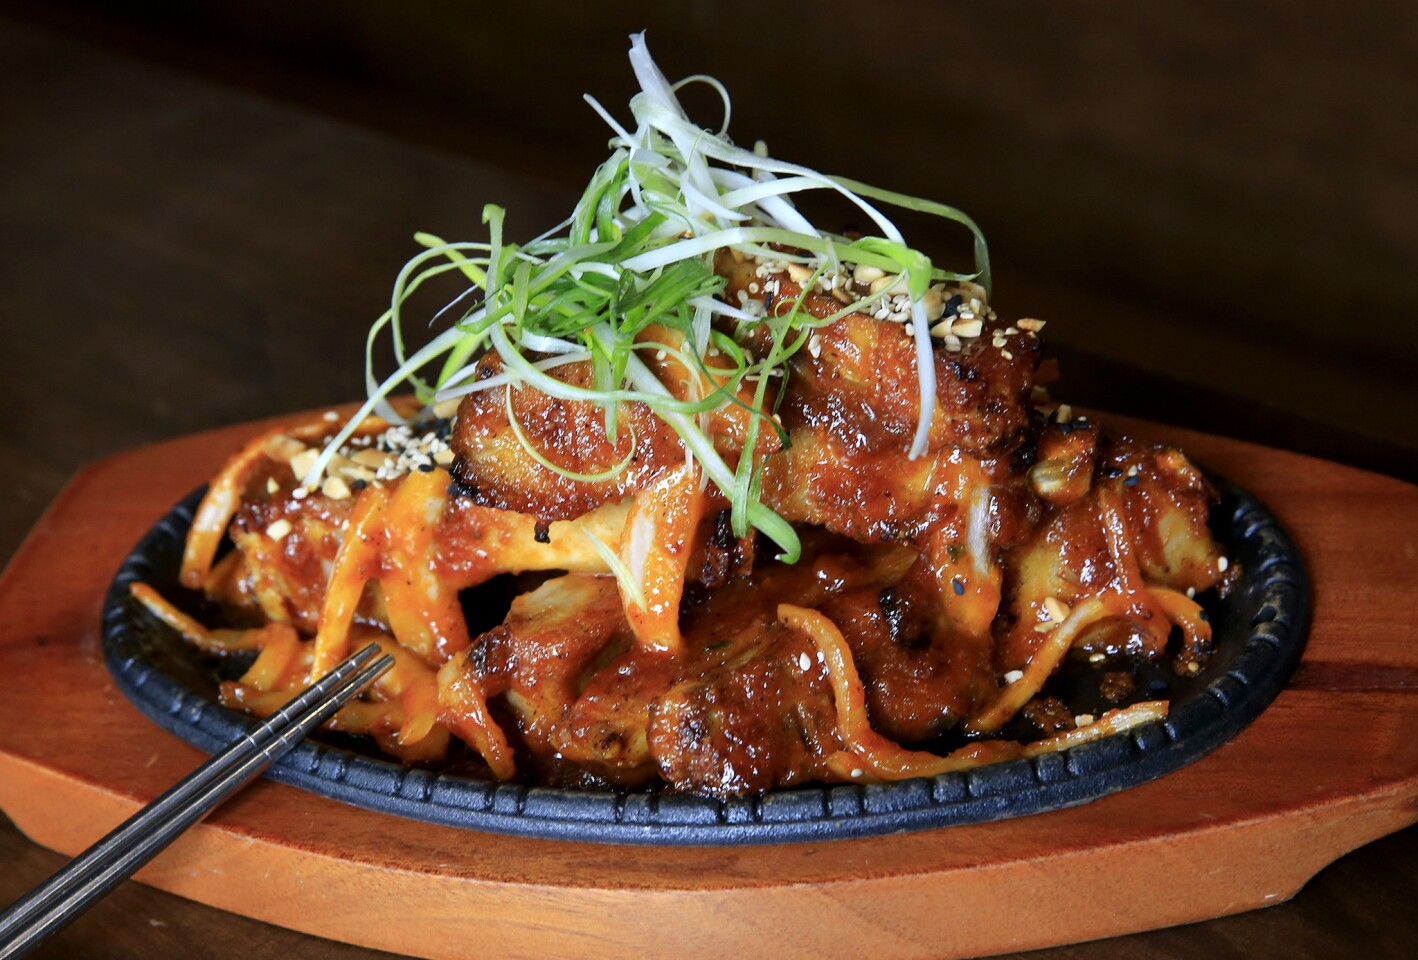 Tricked-out Korean barbecue is the idea at Hanjip in Culver City. Order dishes you don't see at other joints.